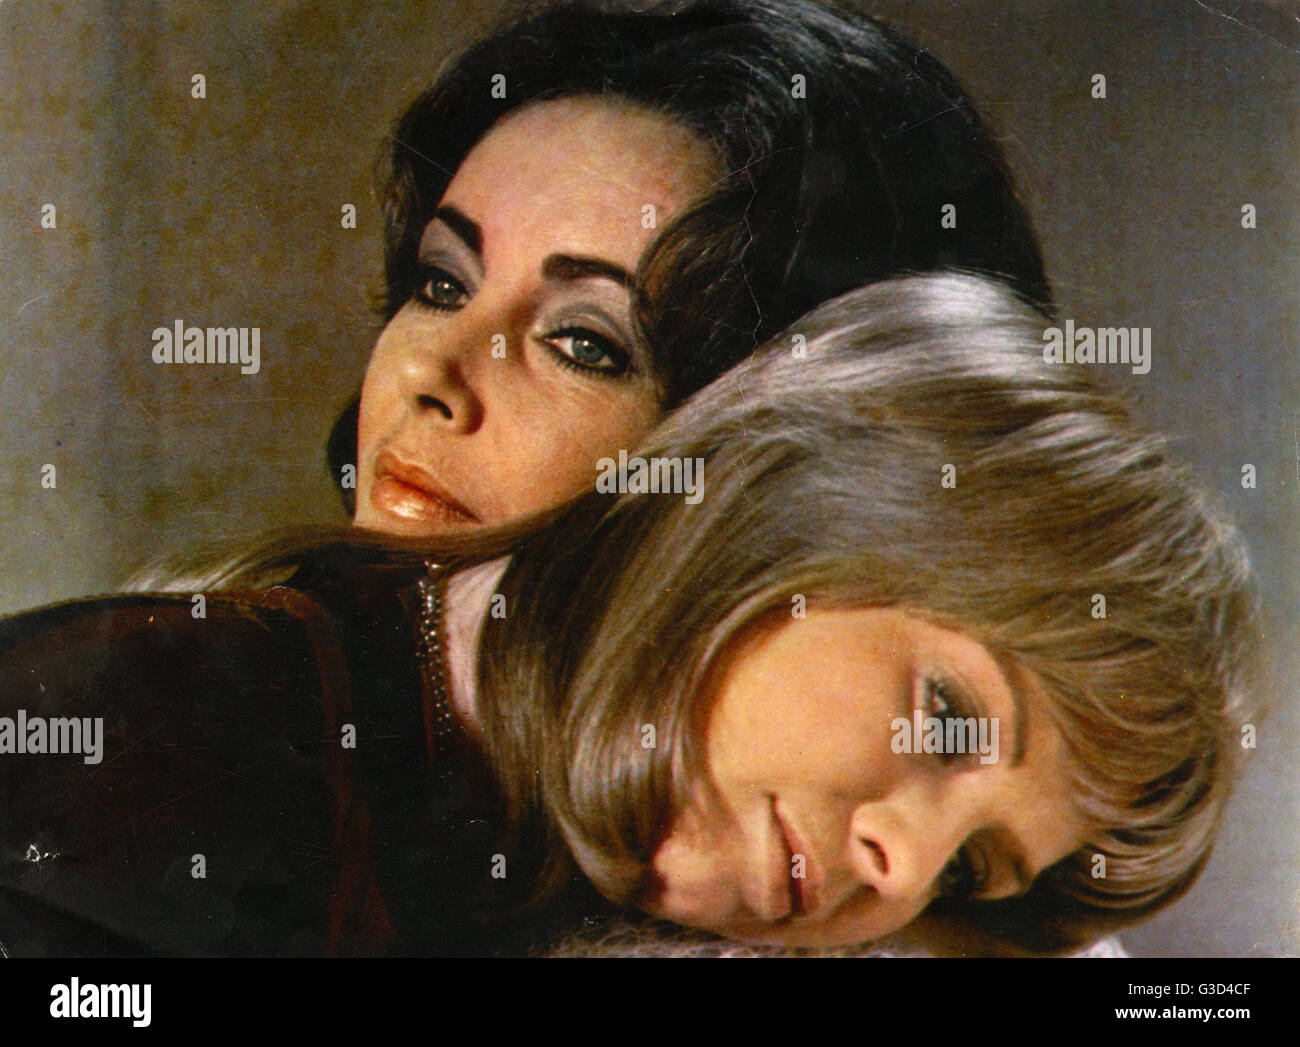 Zee & Co (directed by Brian G. Hutton) starring Elizabeth Taylor and Susannah York (pictured).     Date: - Stock Image